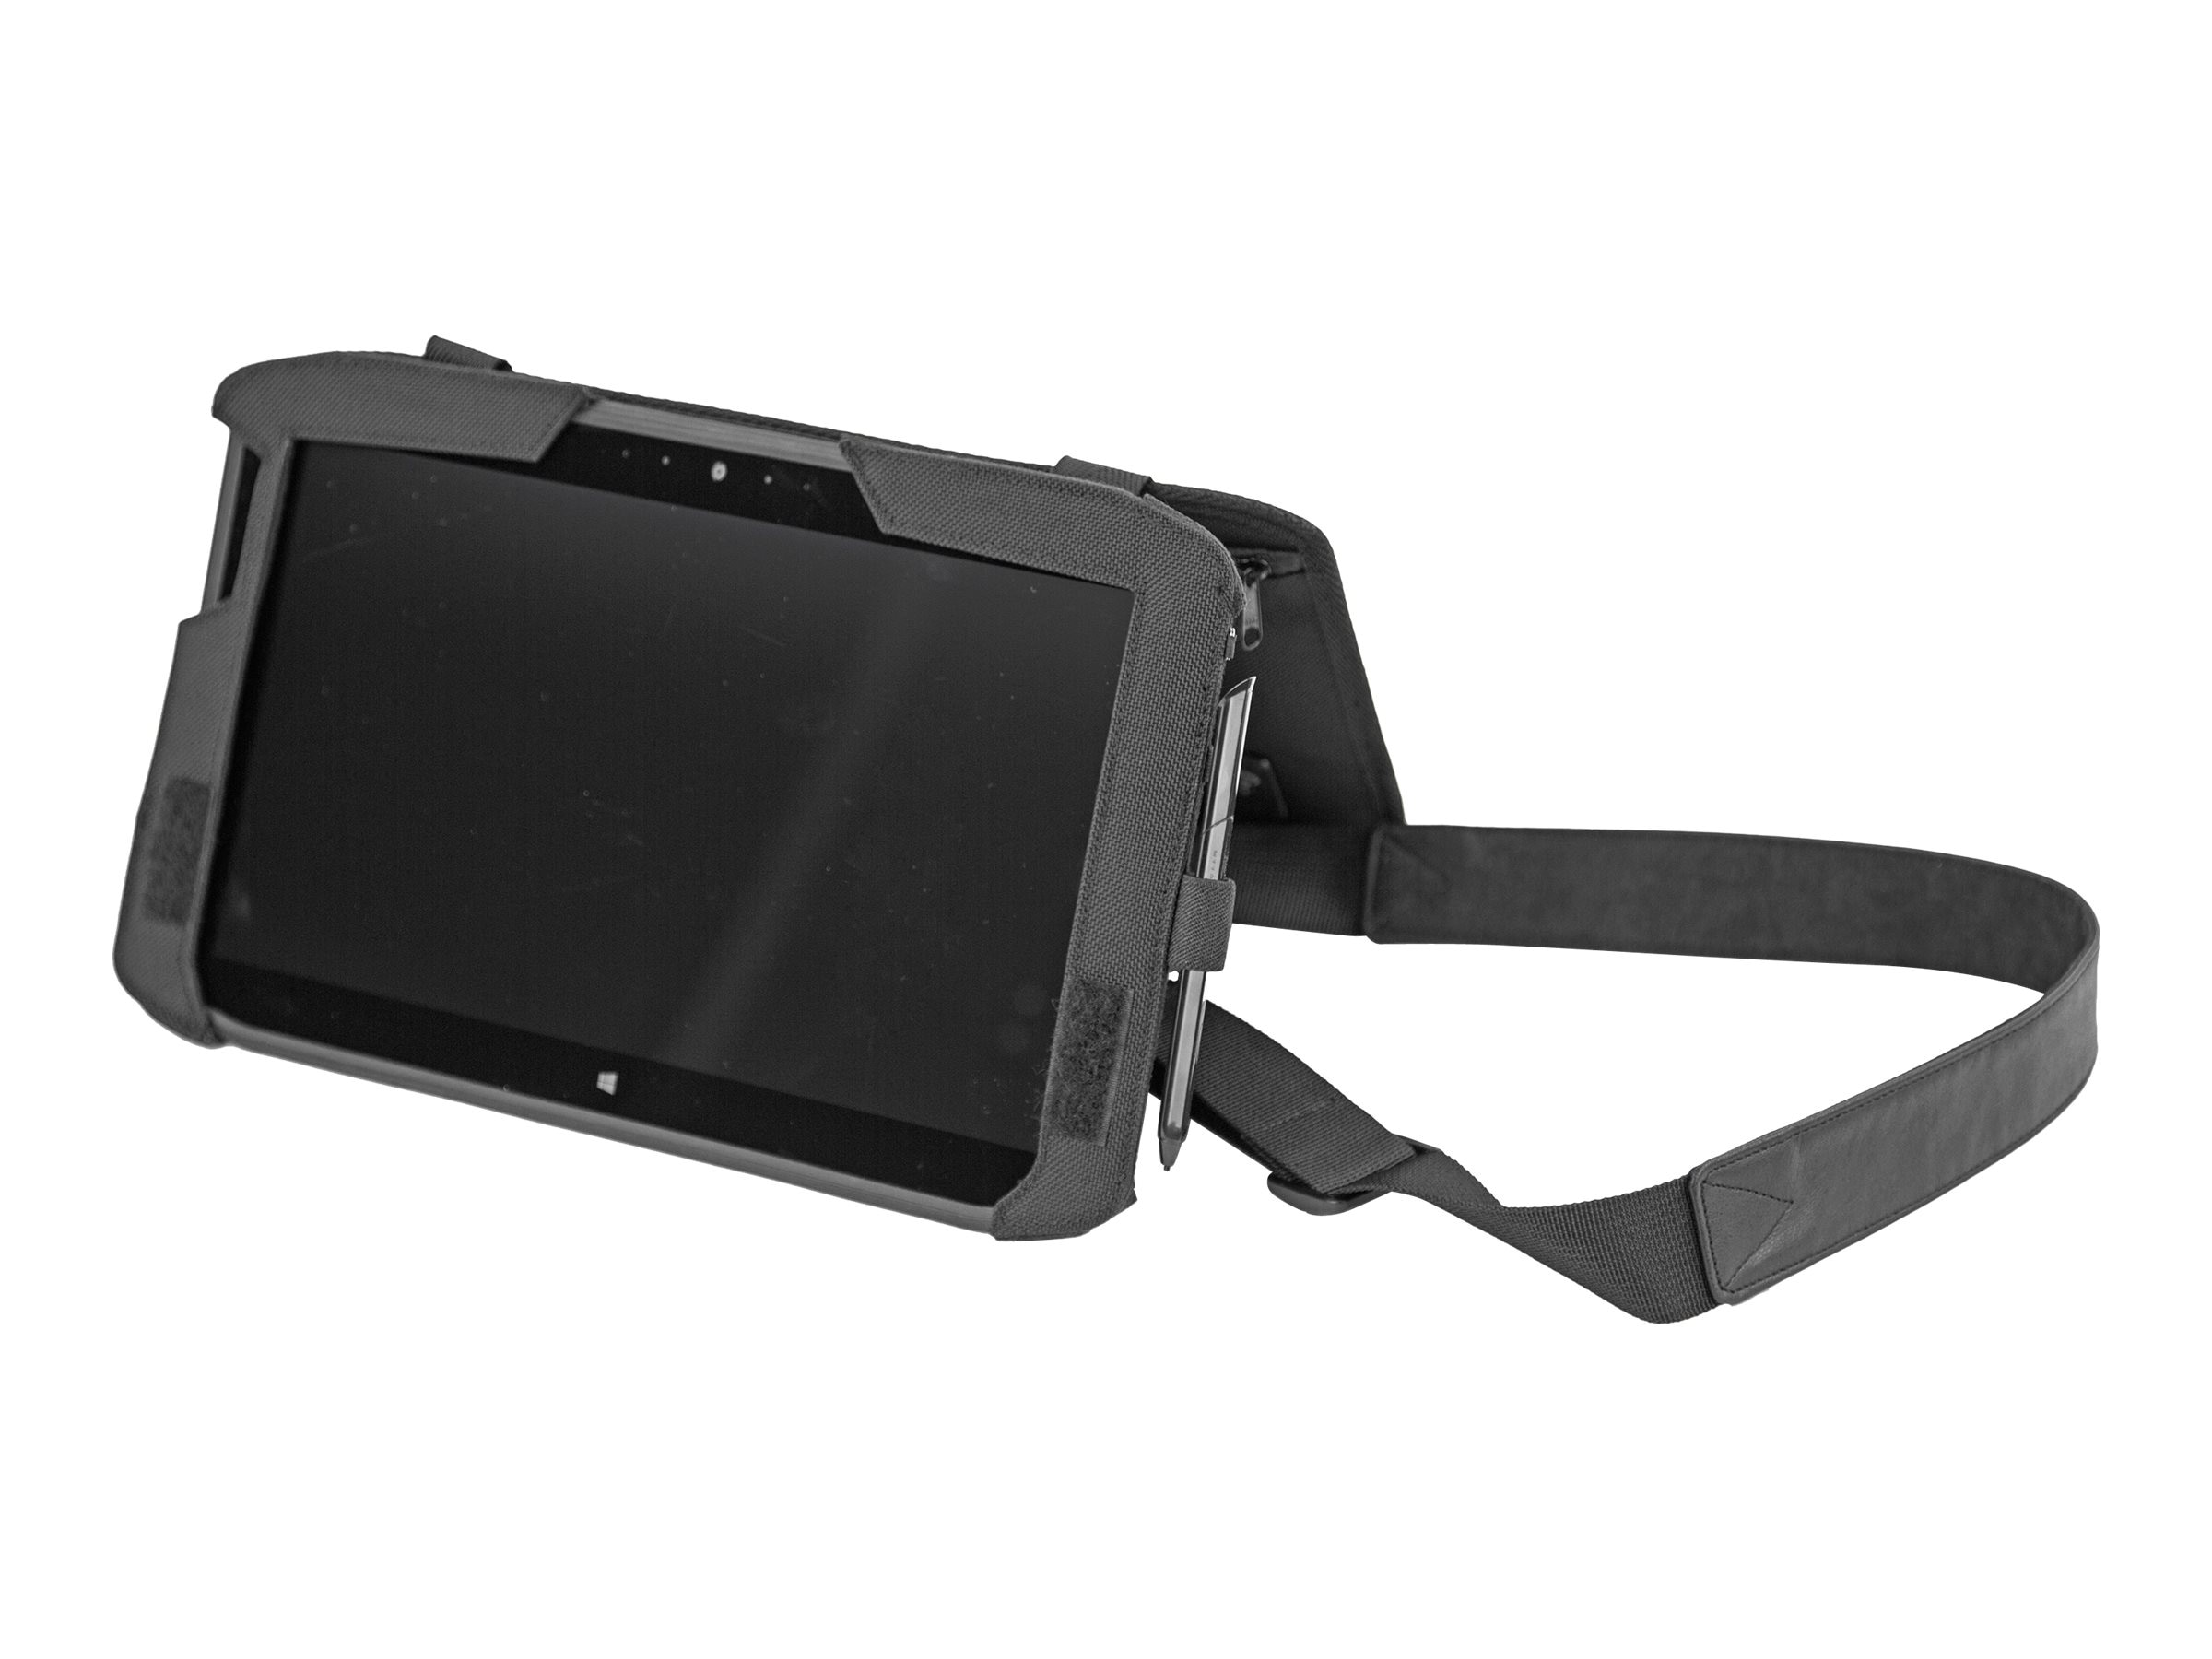 Motion R12 Series Work Anywhere Kit with Shoulder Strap, 510.400.10, 17561242, Carrying Cases - Tablets & eReaders